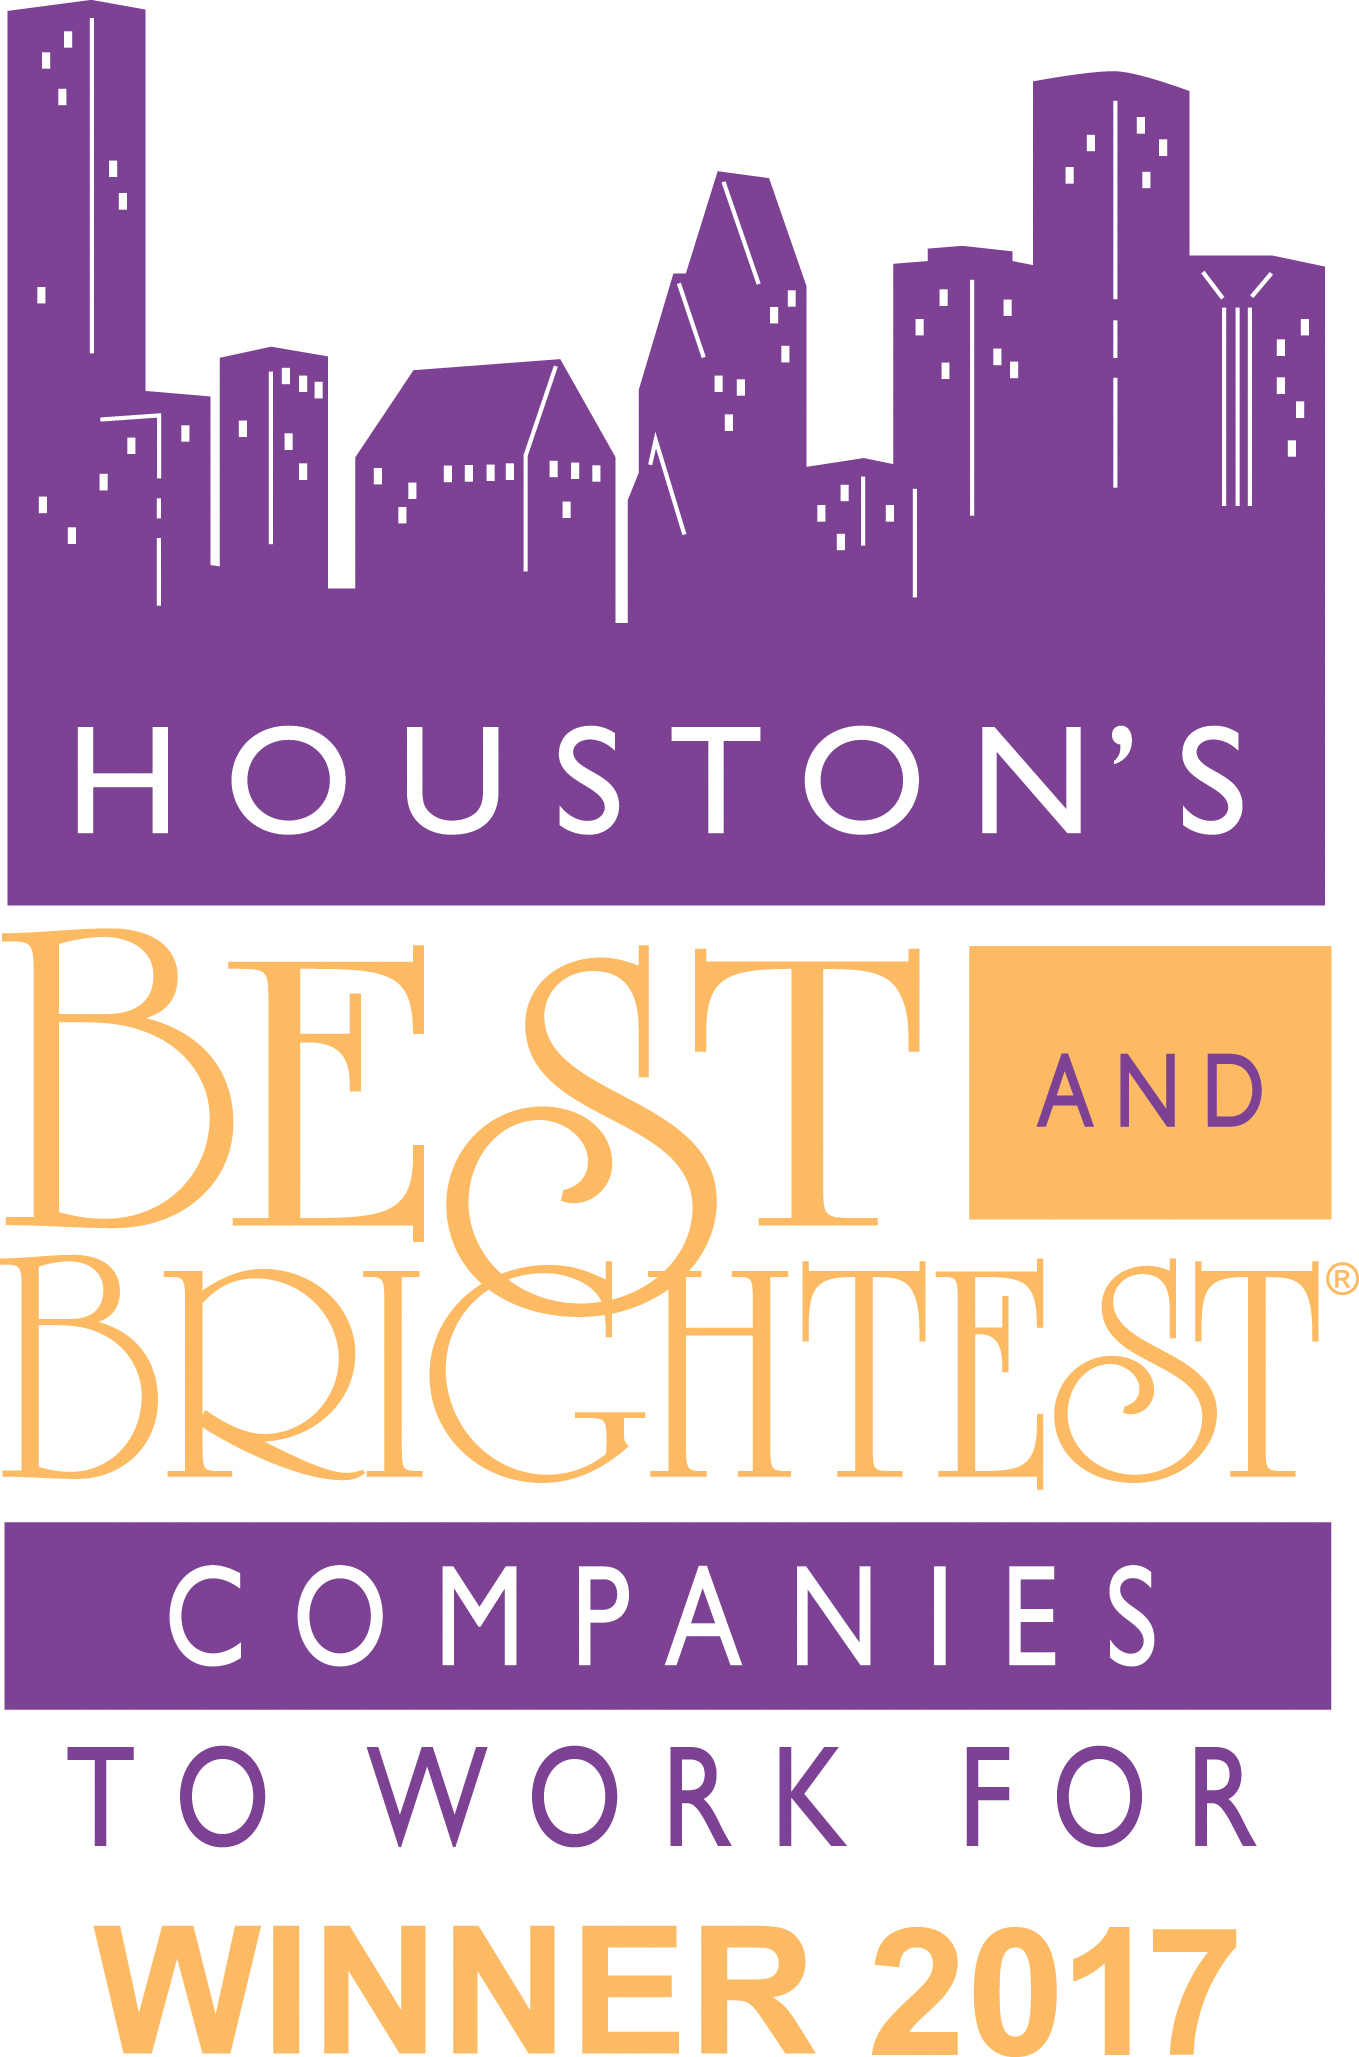 Houston's best and brightest companies to work for